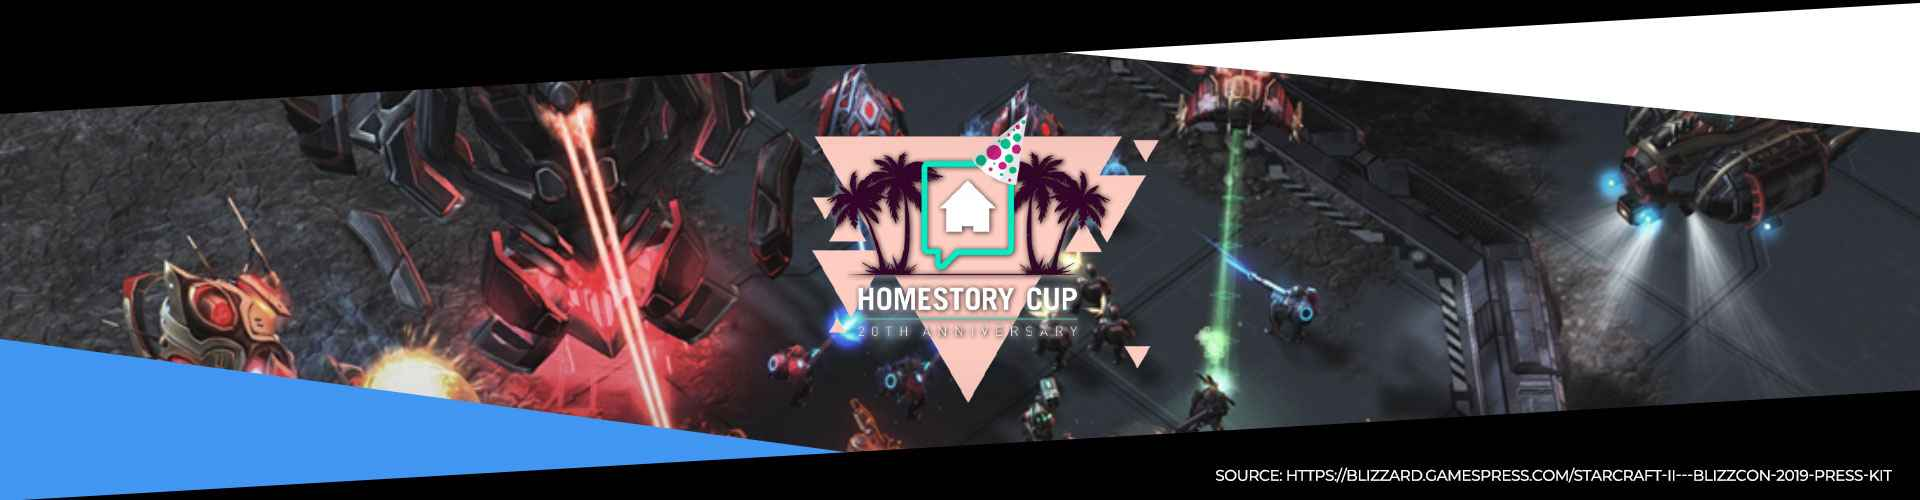 HomeStory Cup XX preview